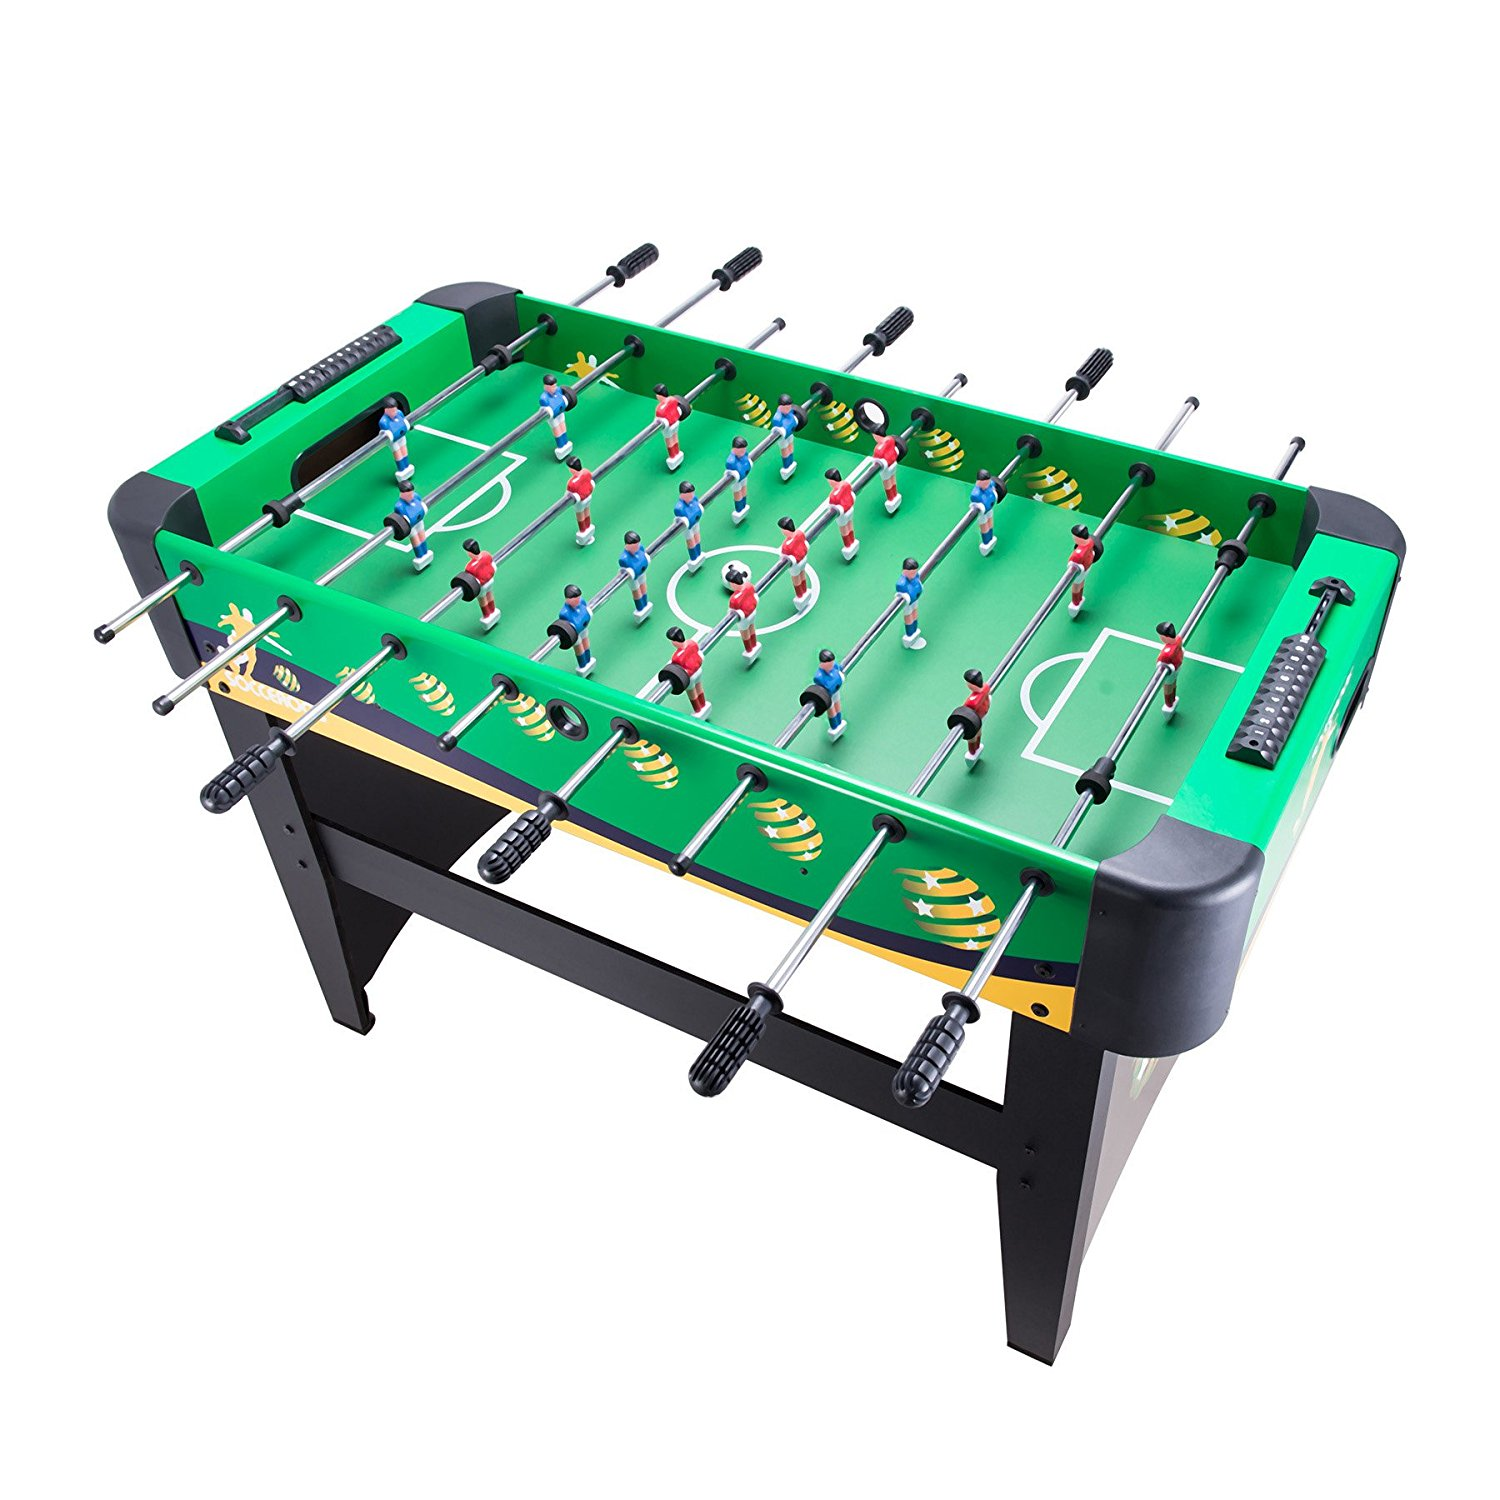 ... Regulation Foosball Table By Pinty Foosball Table Soccer 48 Mdf  Construction For Family Use ...